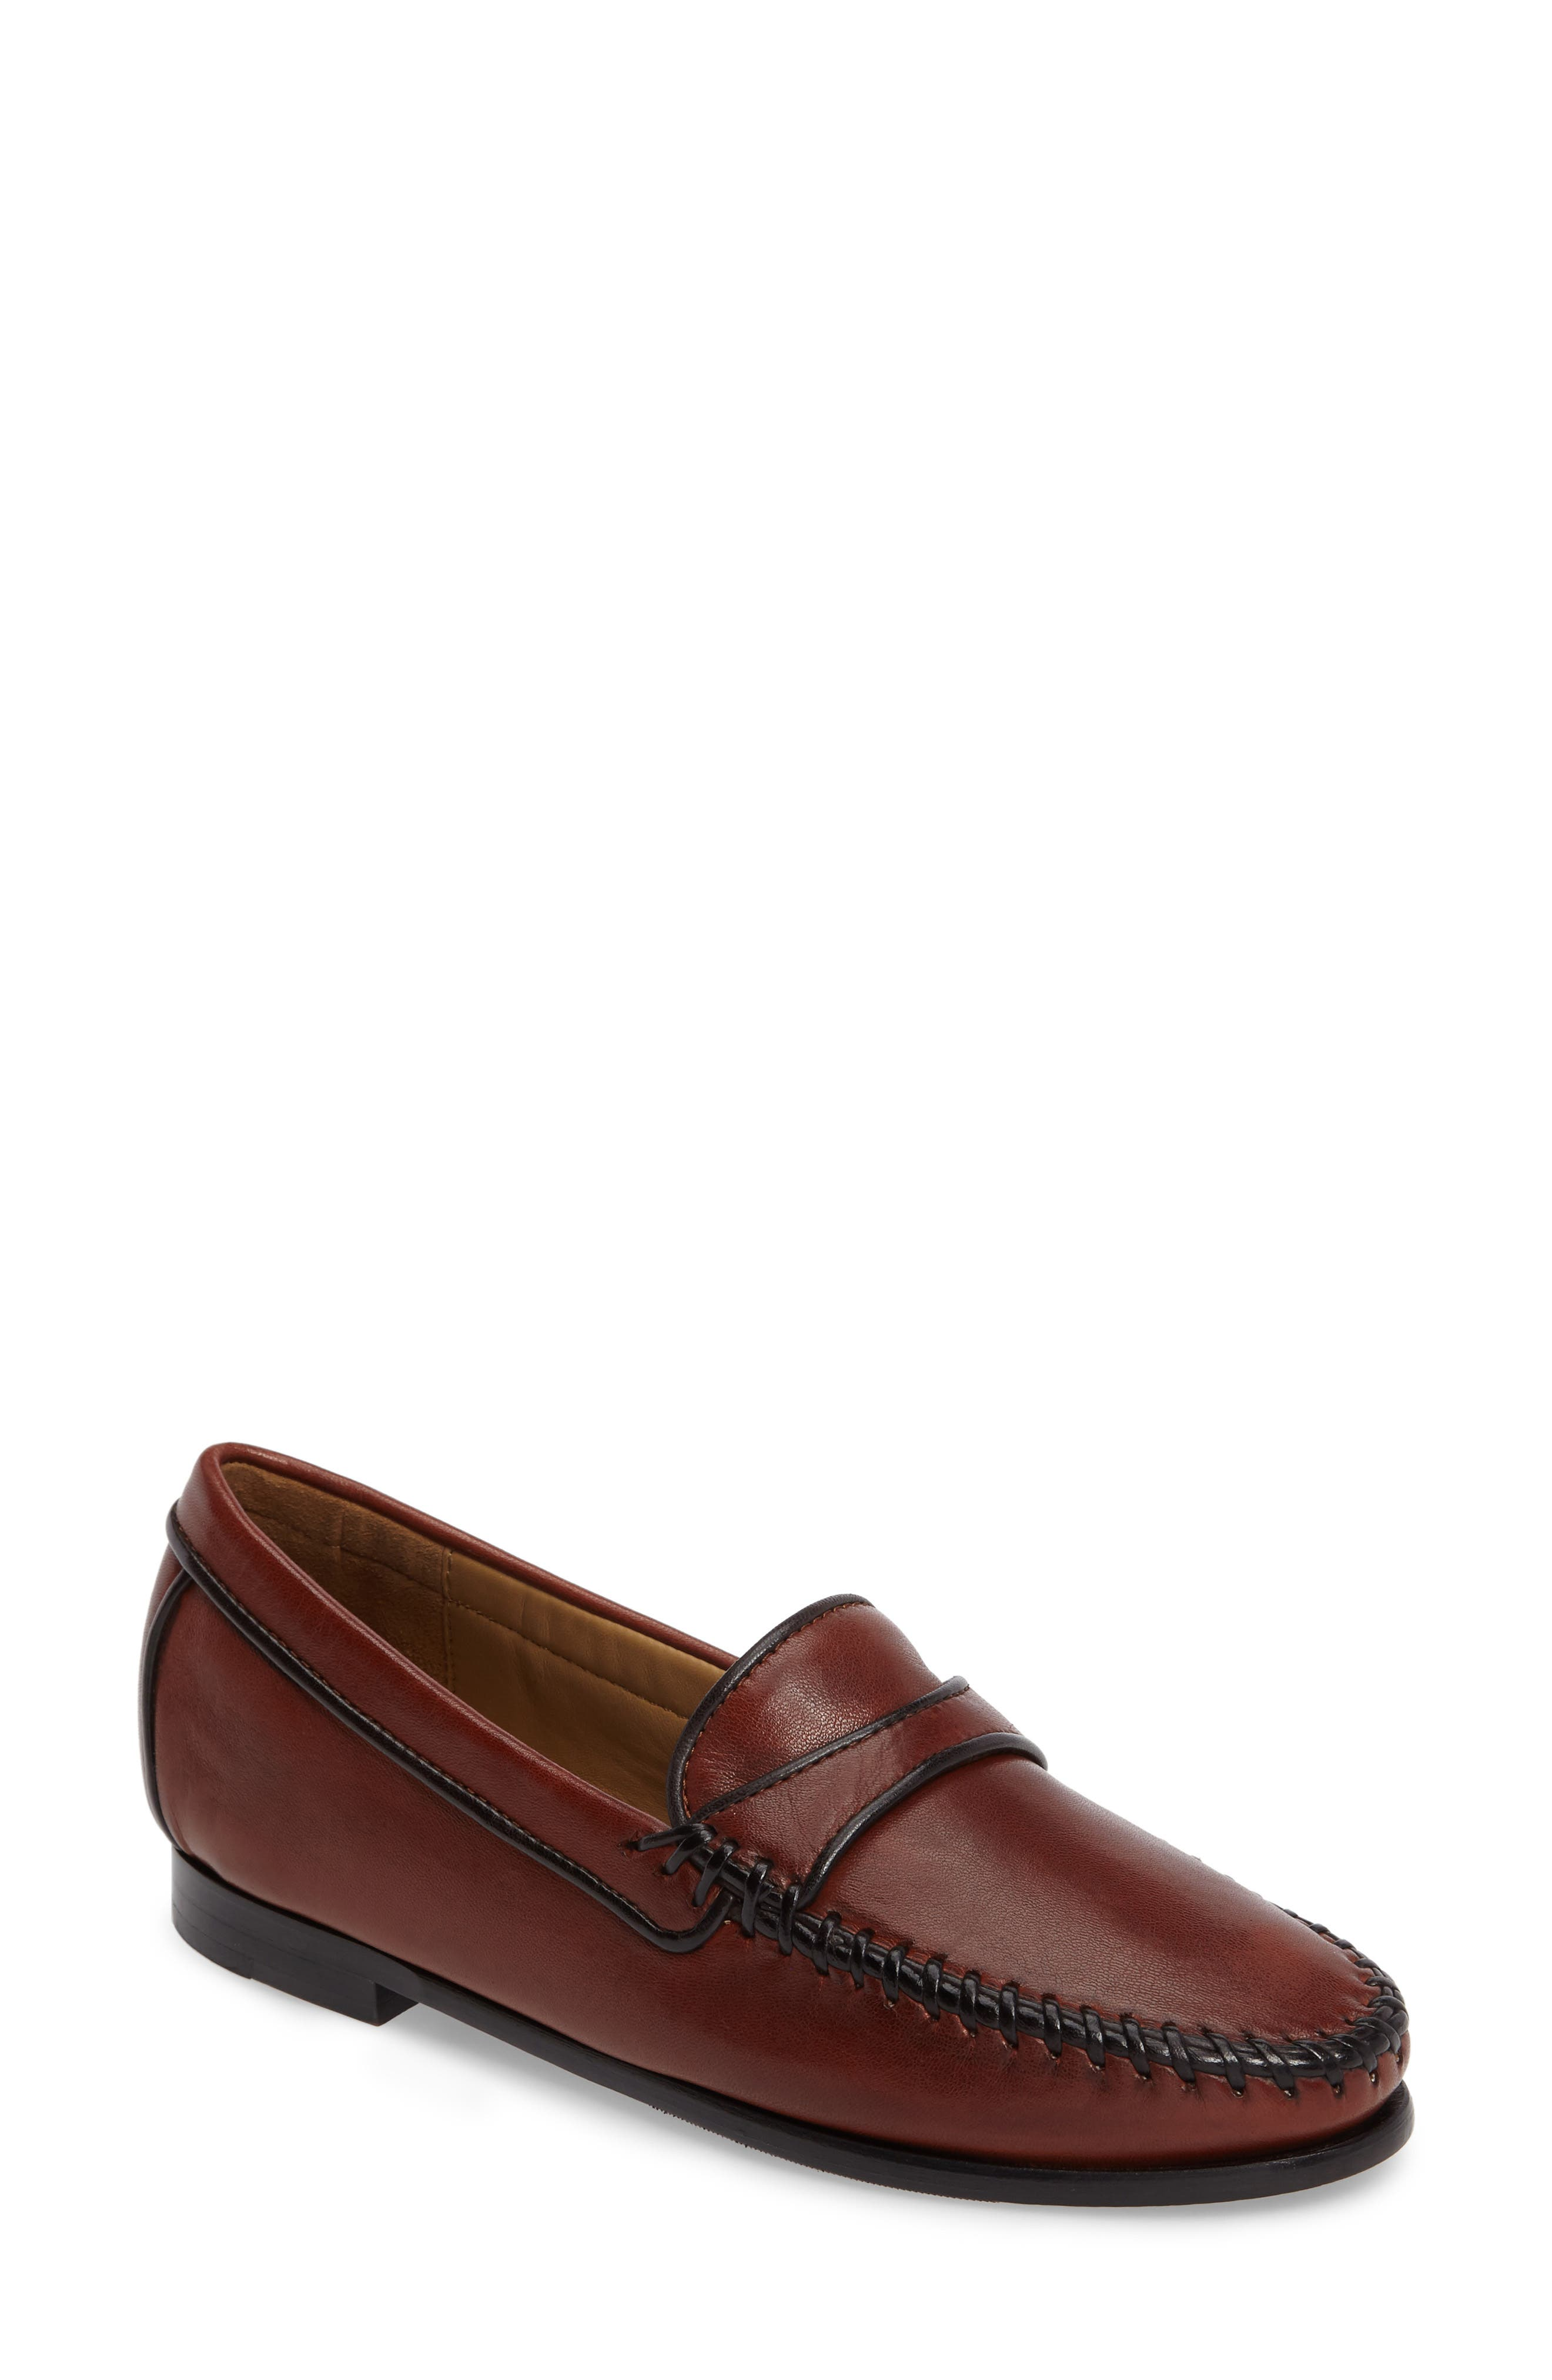 Alternate Image 1 Selected - Robert Zur Aria Loafer (Women)